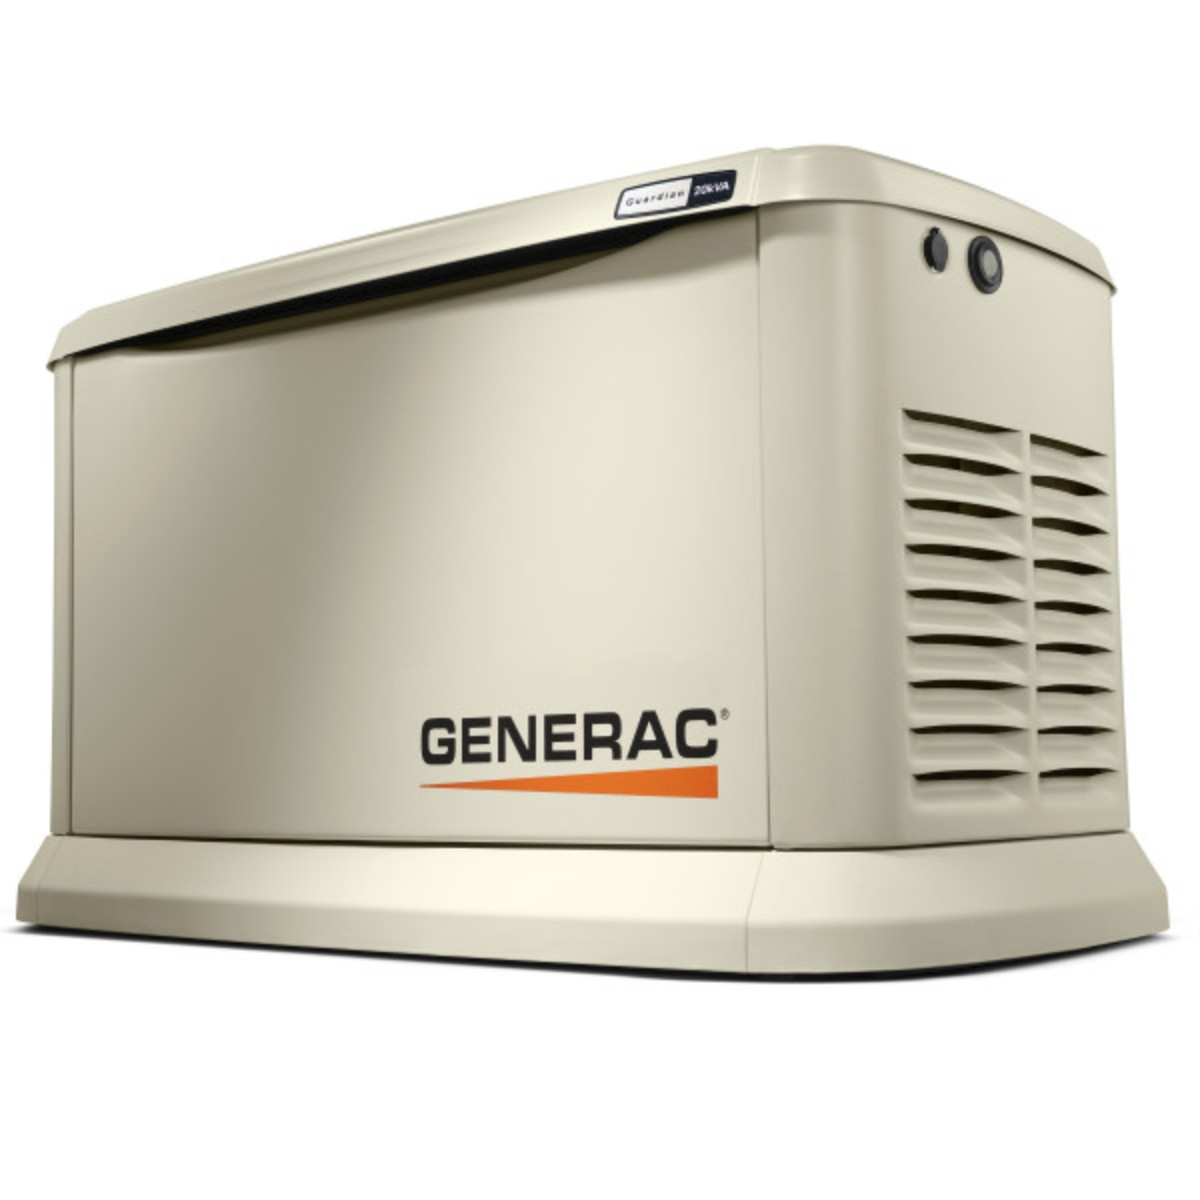 Generac 7077 20kW 3-phase 120/208V Guardian Generator with Wi-Fi